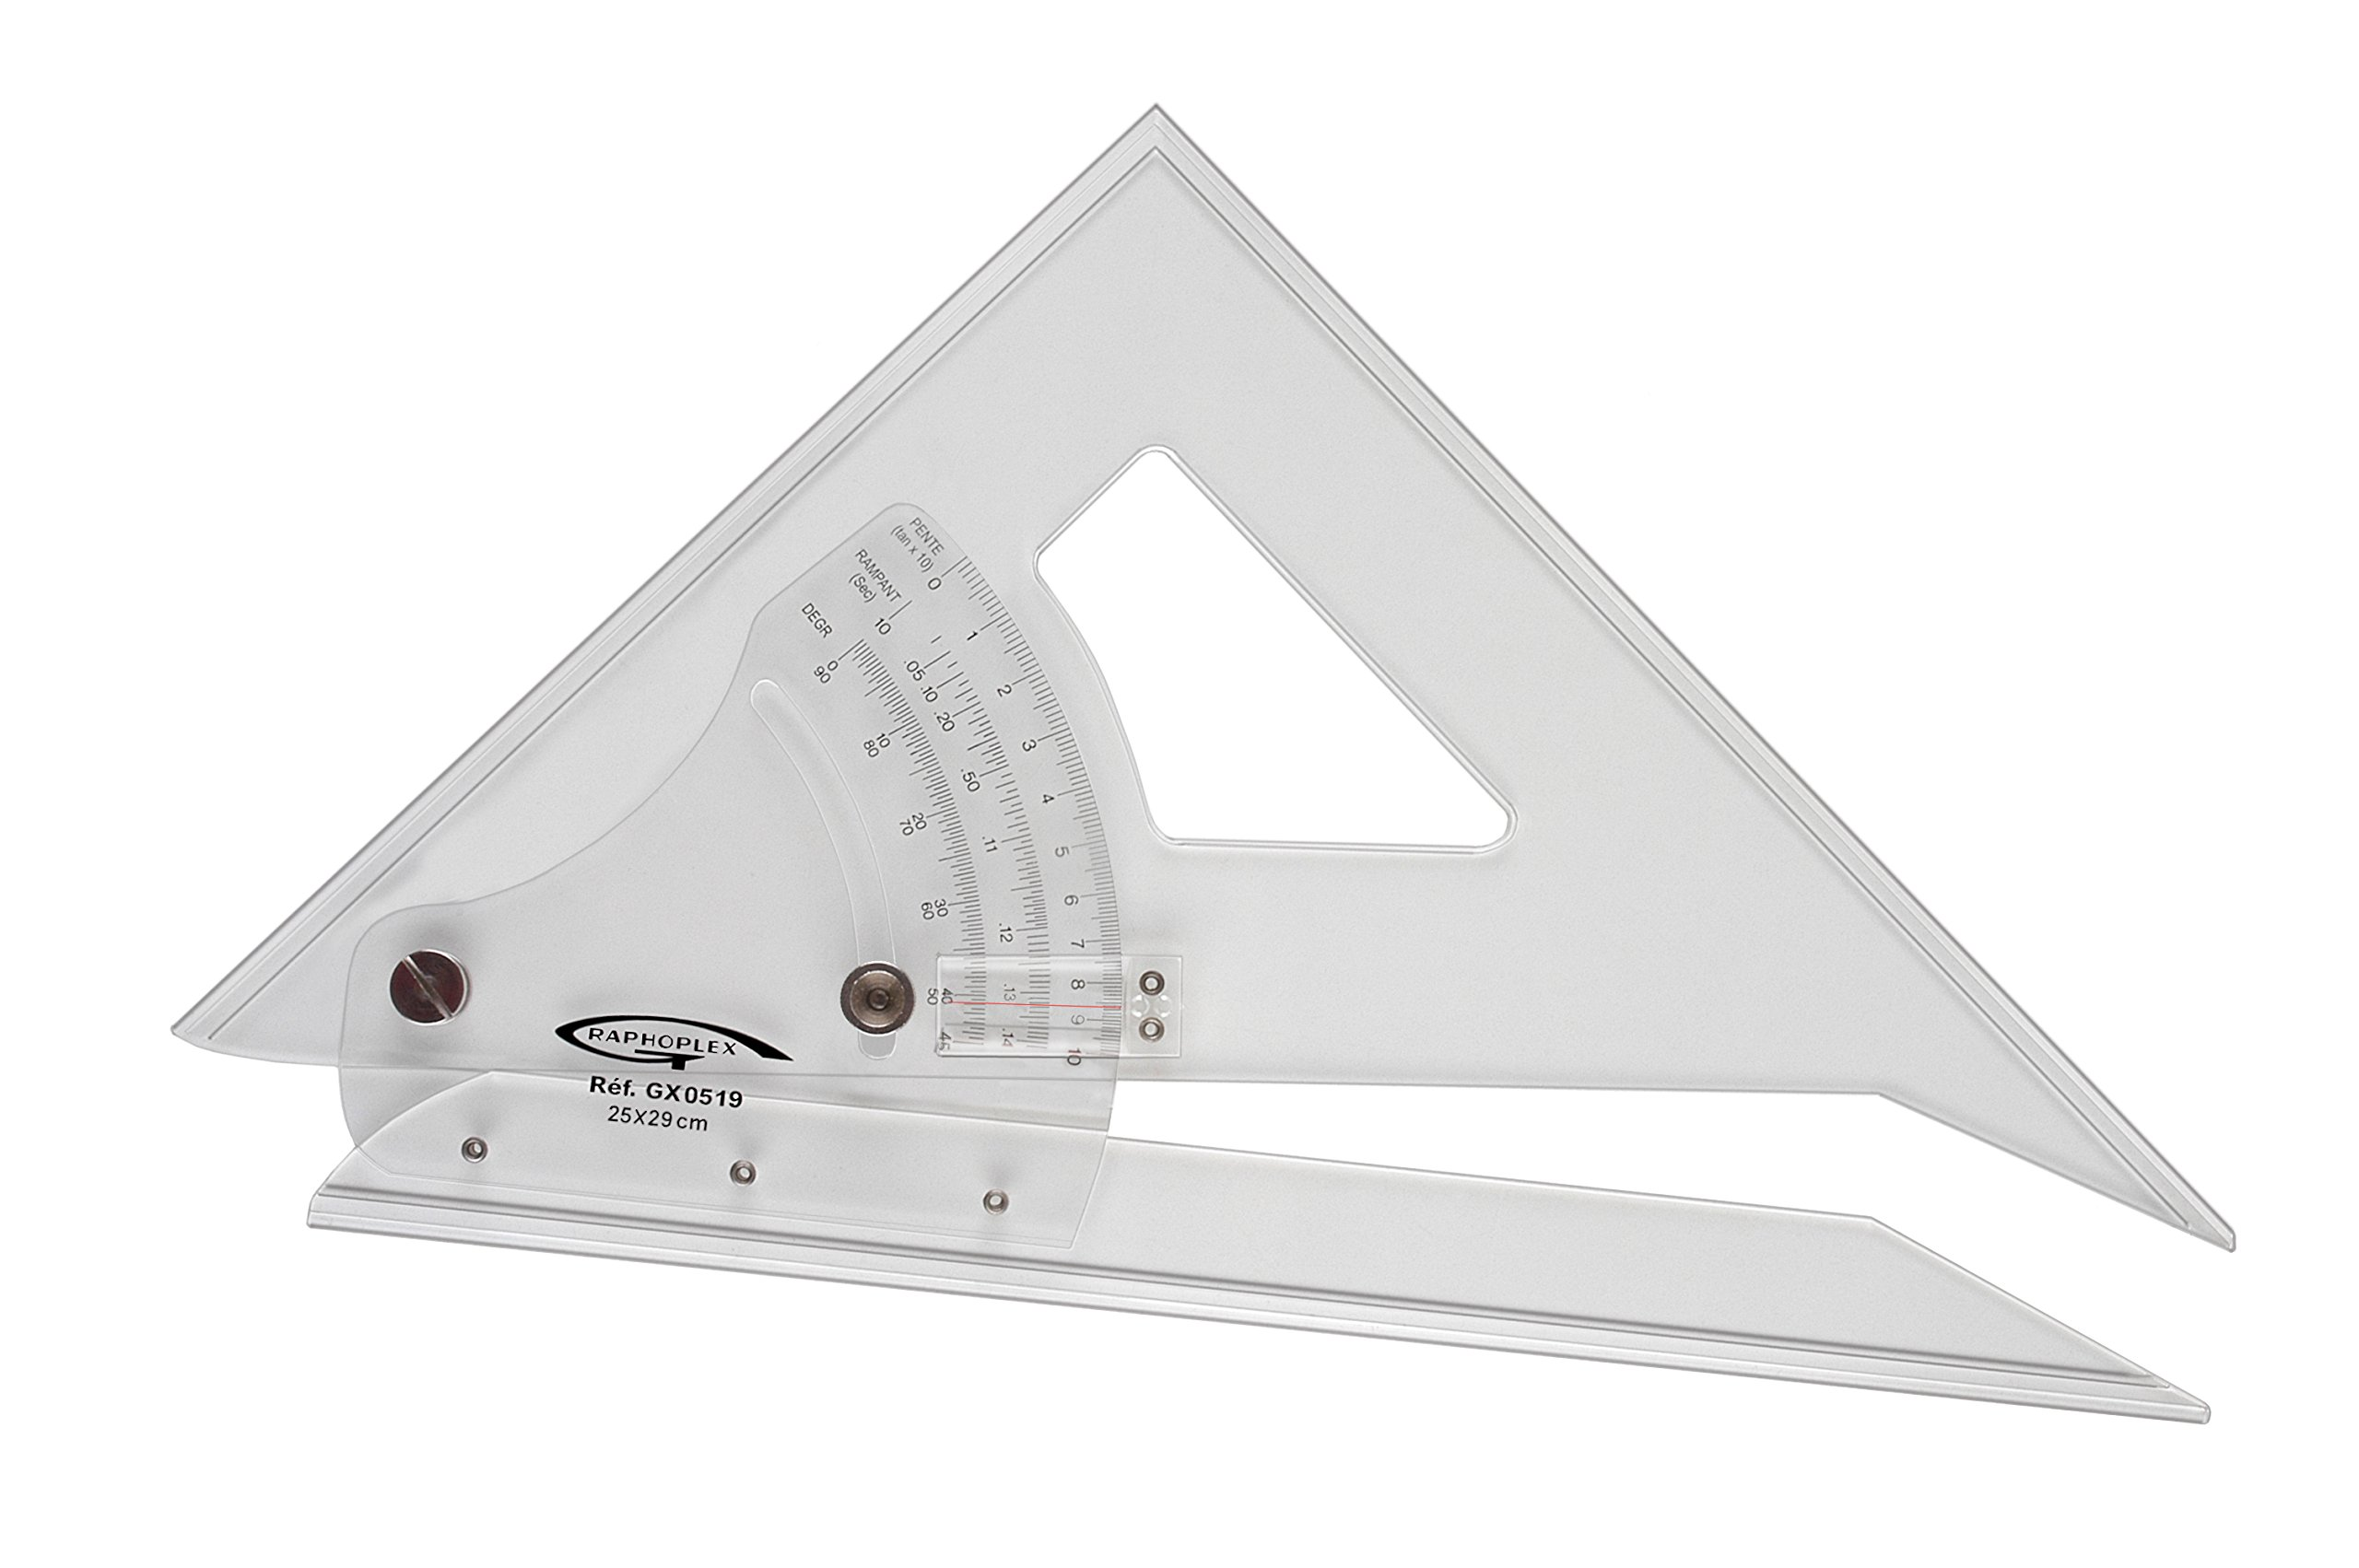 Graphoplex Set Square/Protractor Adjustable from 45° to 90° bords antitaches Transparent